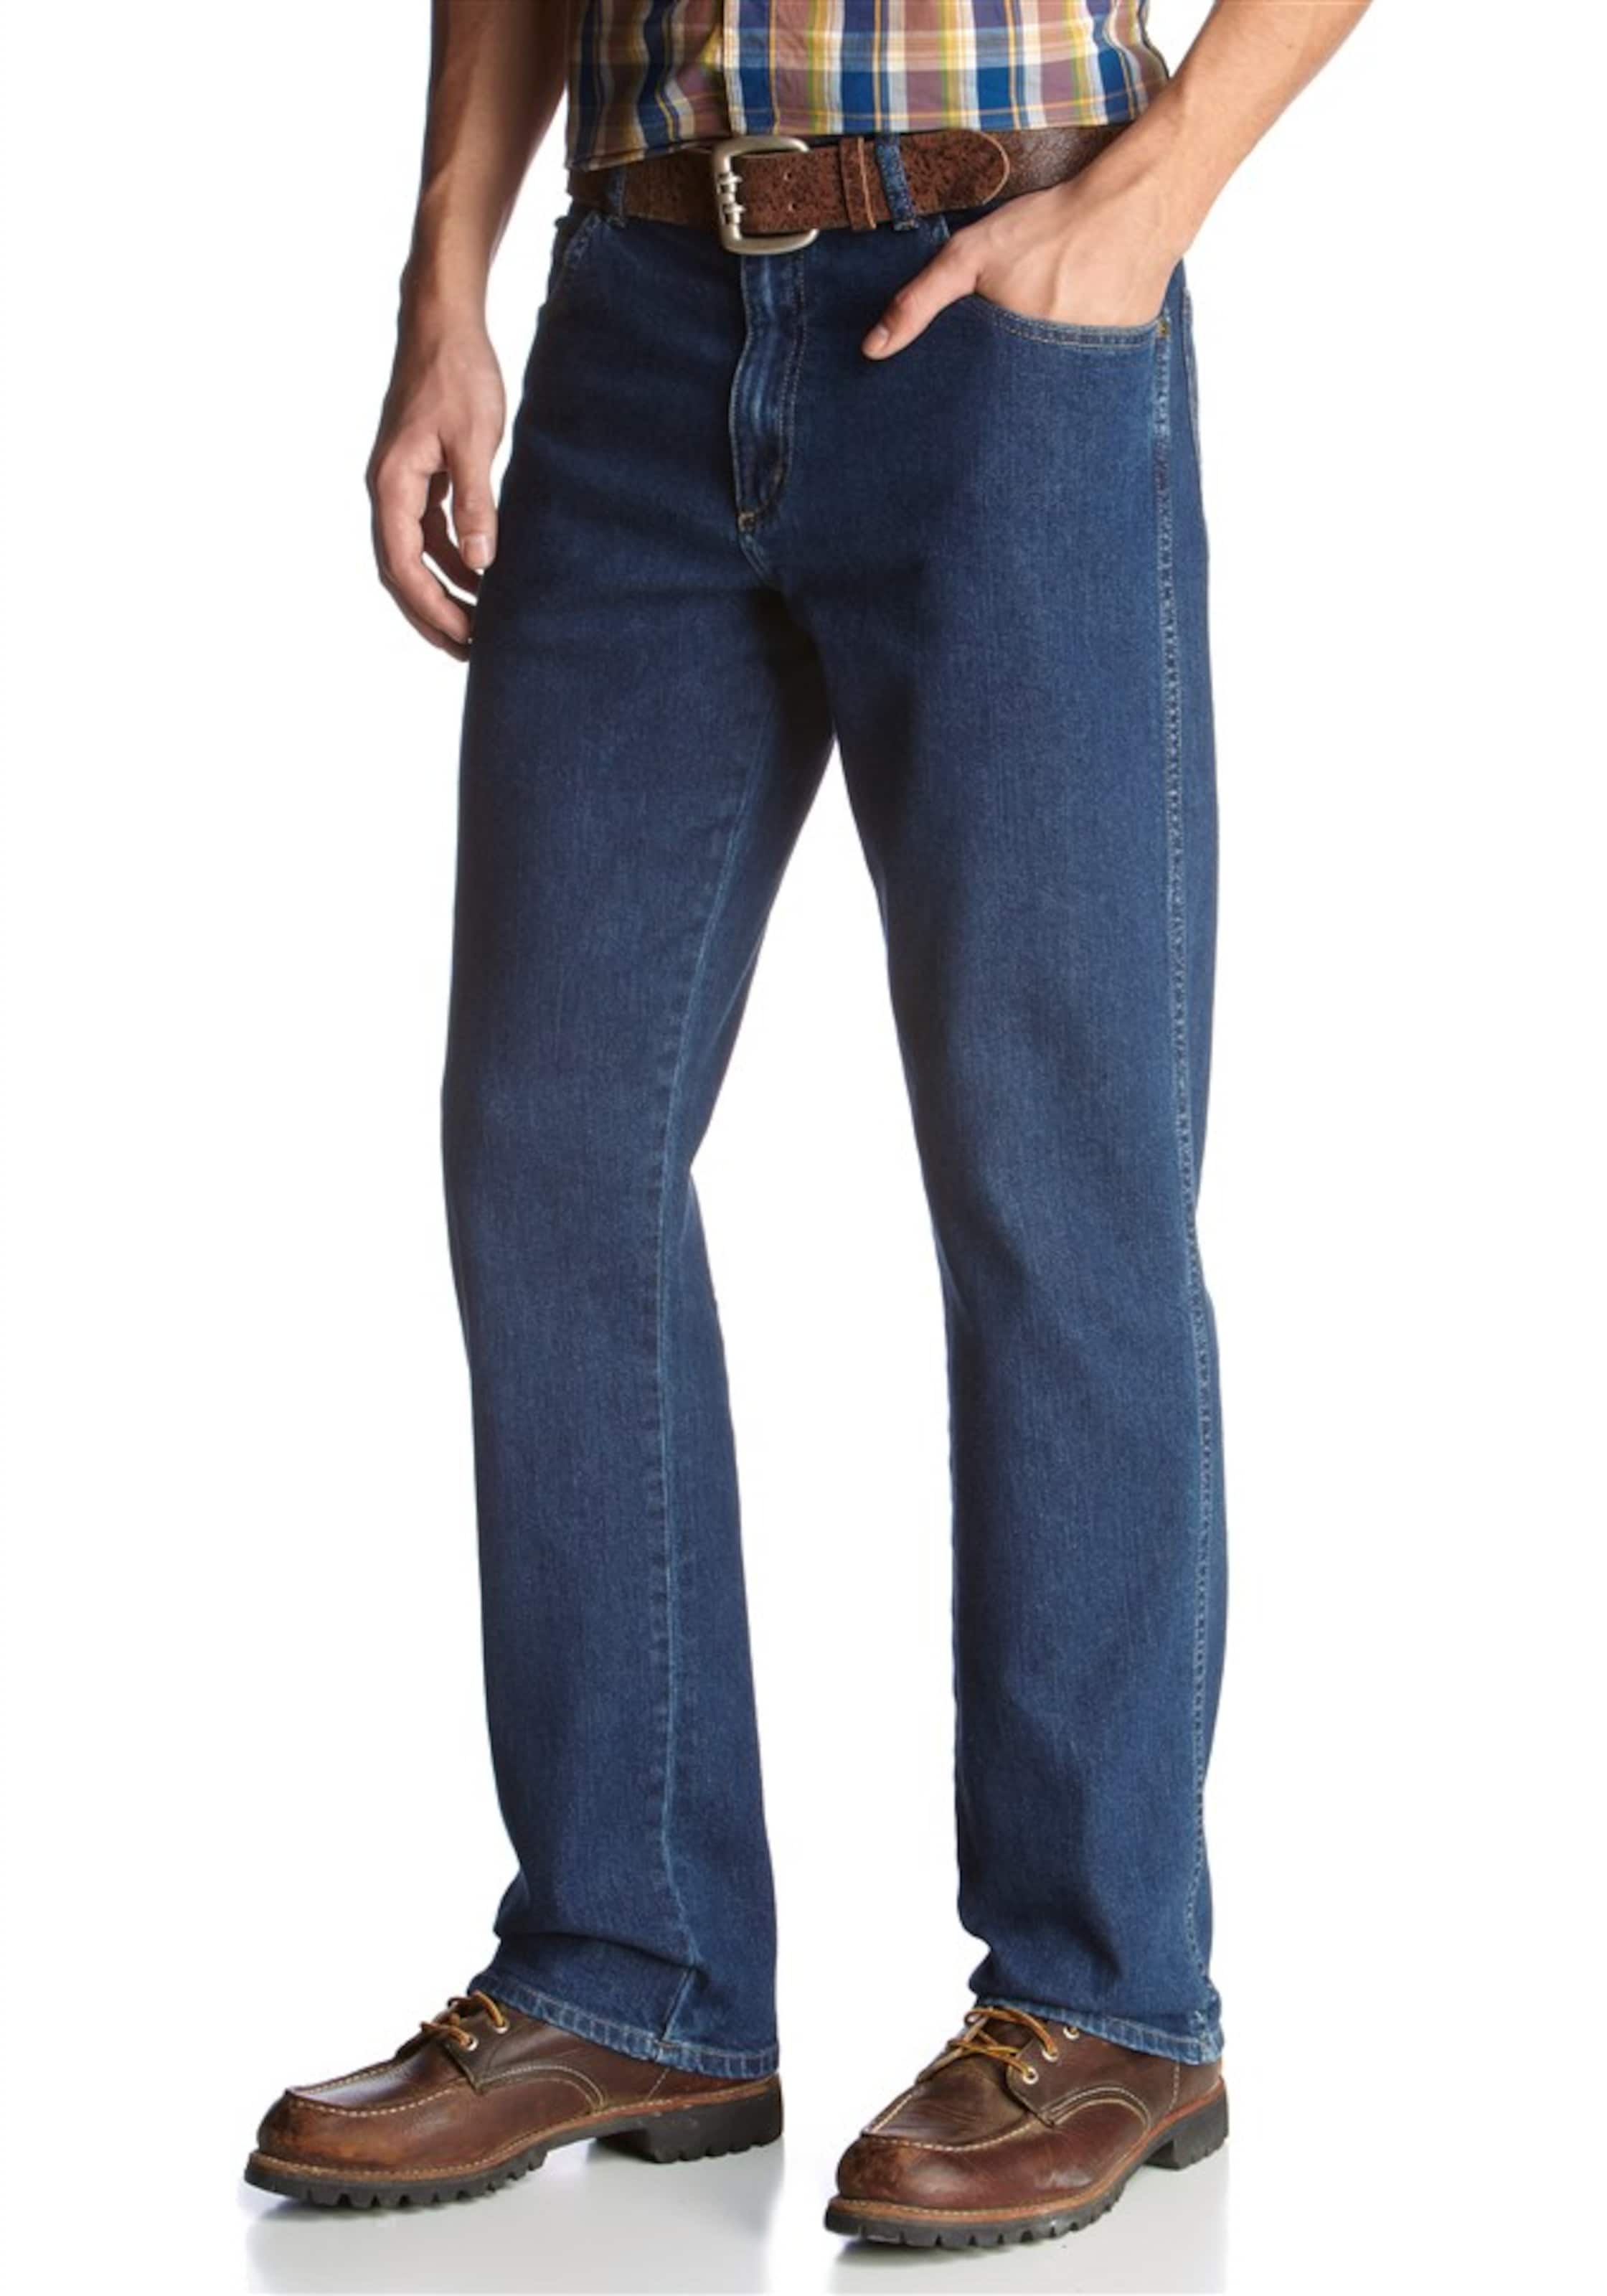 Basic Stretch Stretch WRANGLER Durable Jeans Wrangler WRANGLER W10I Wrangler qICwvUy